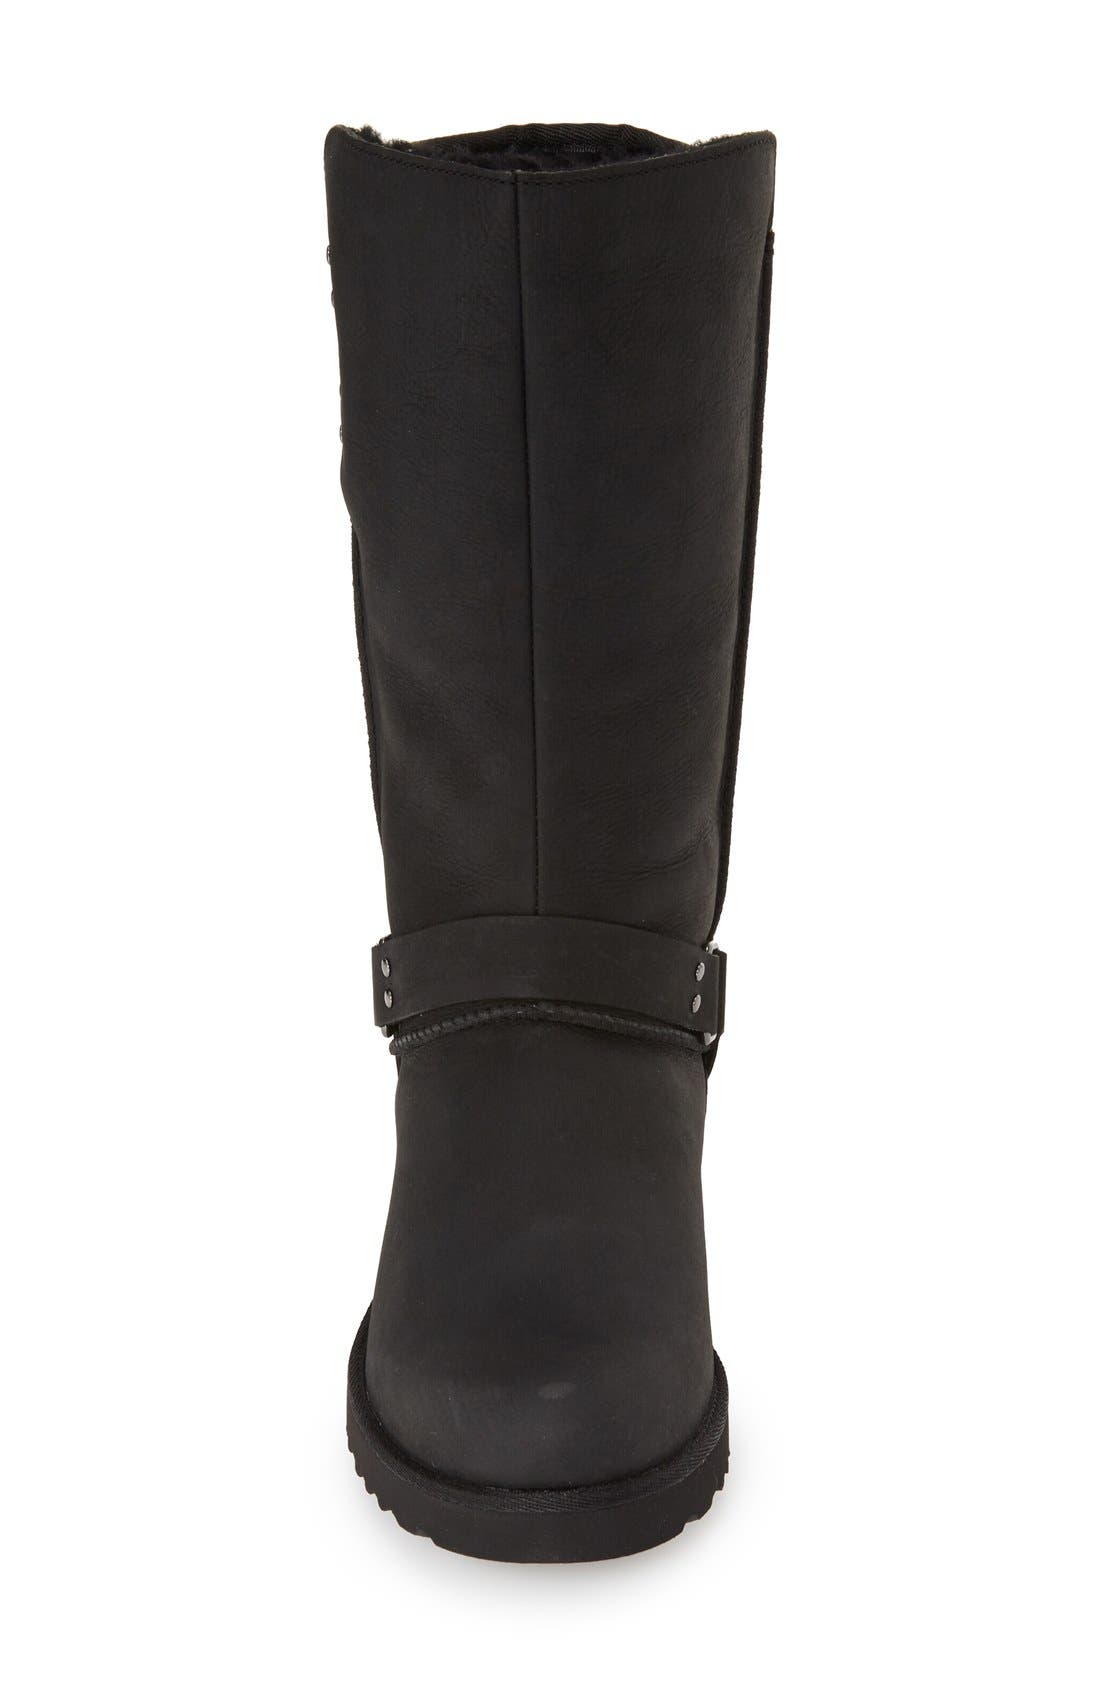 'Jasper' Water Resistant Boot,                             Alternate thumbnail 3, color,                             Black Leather